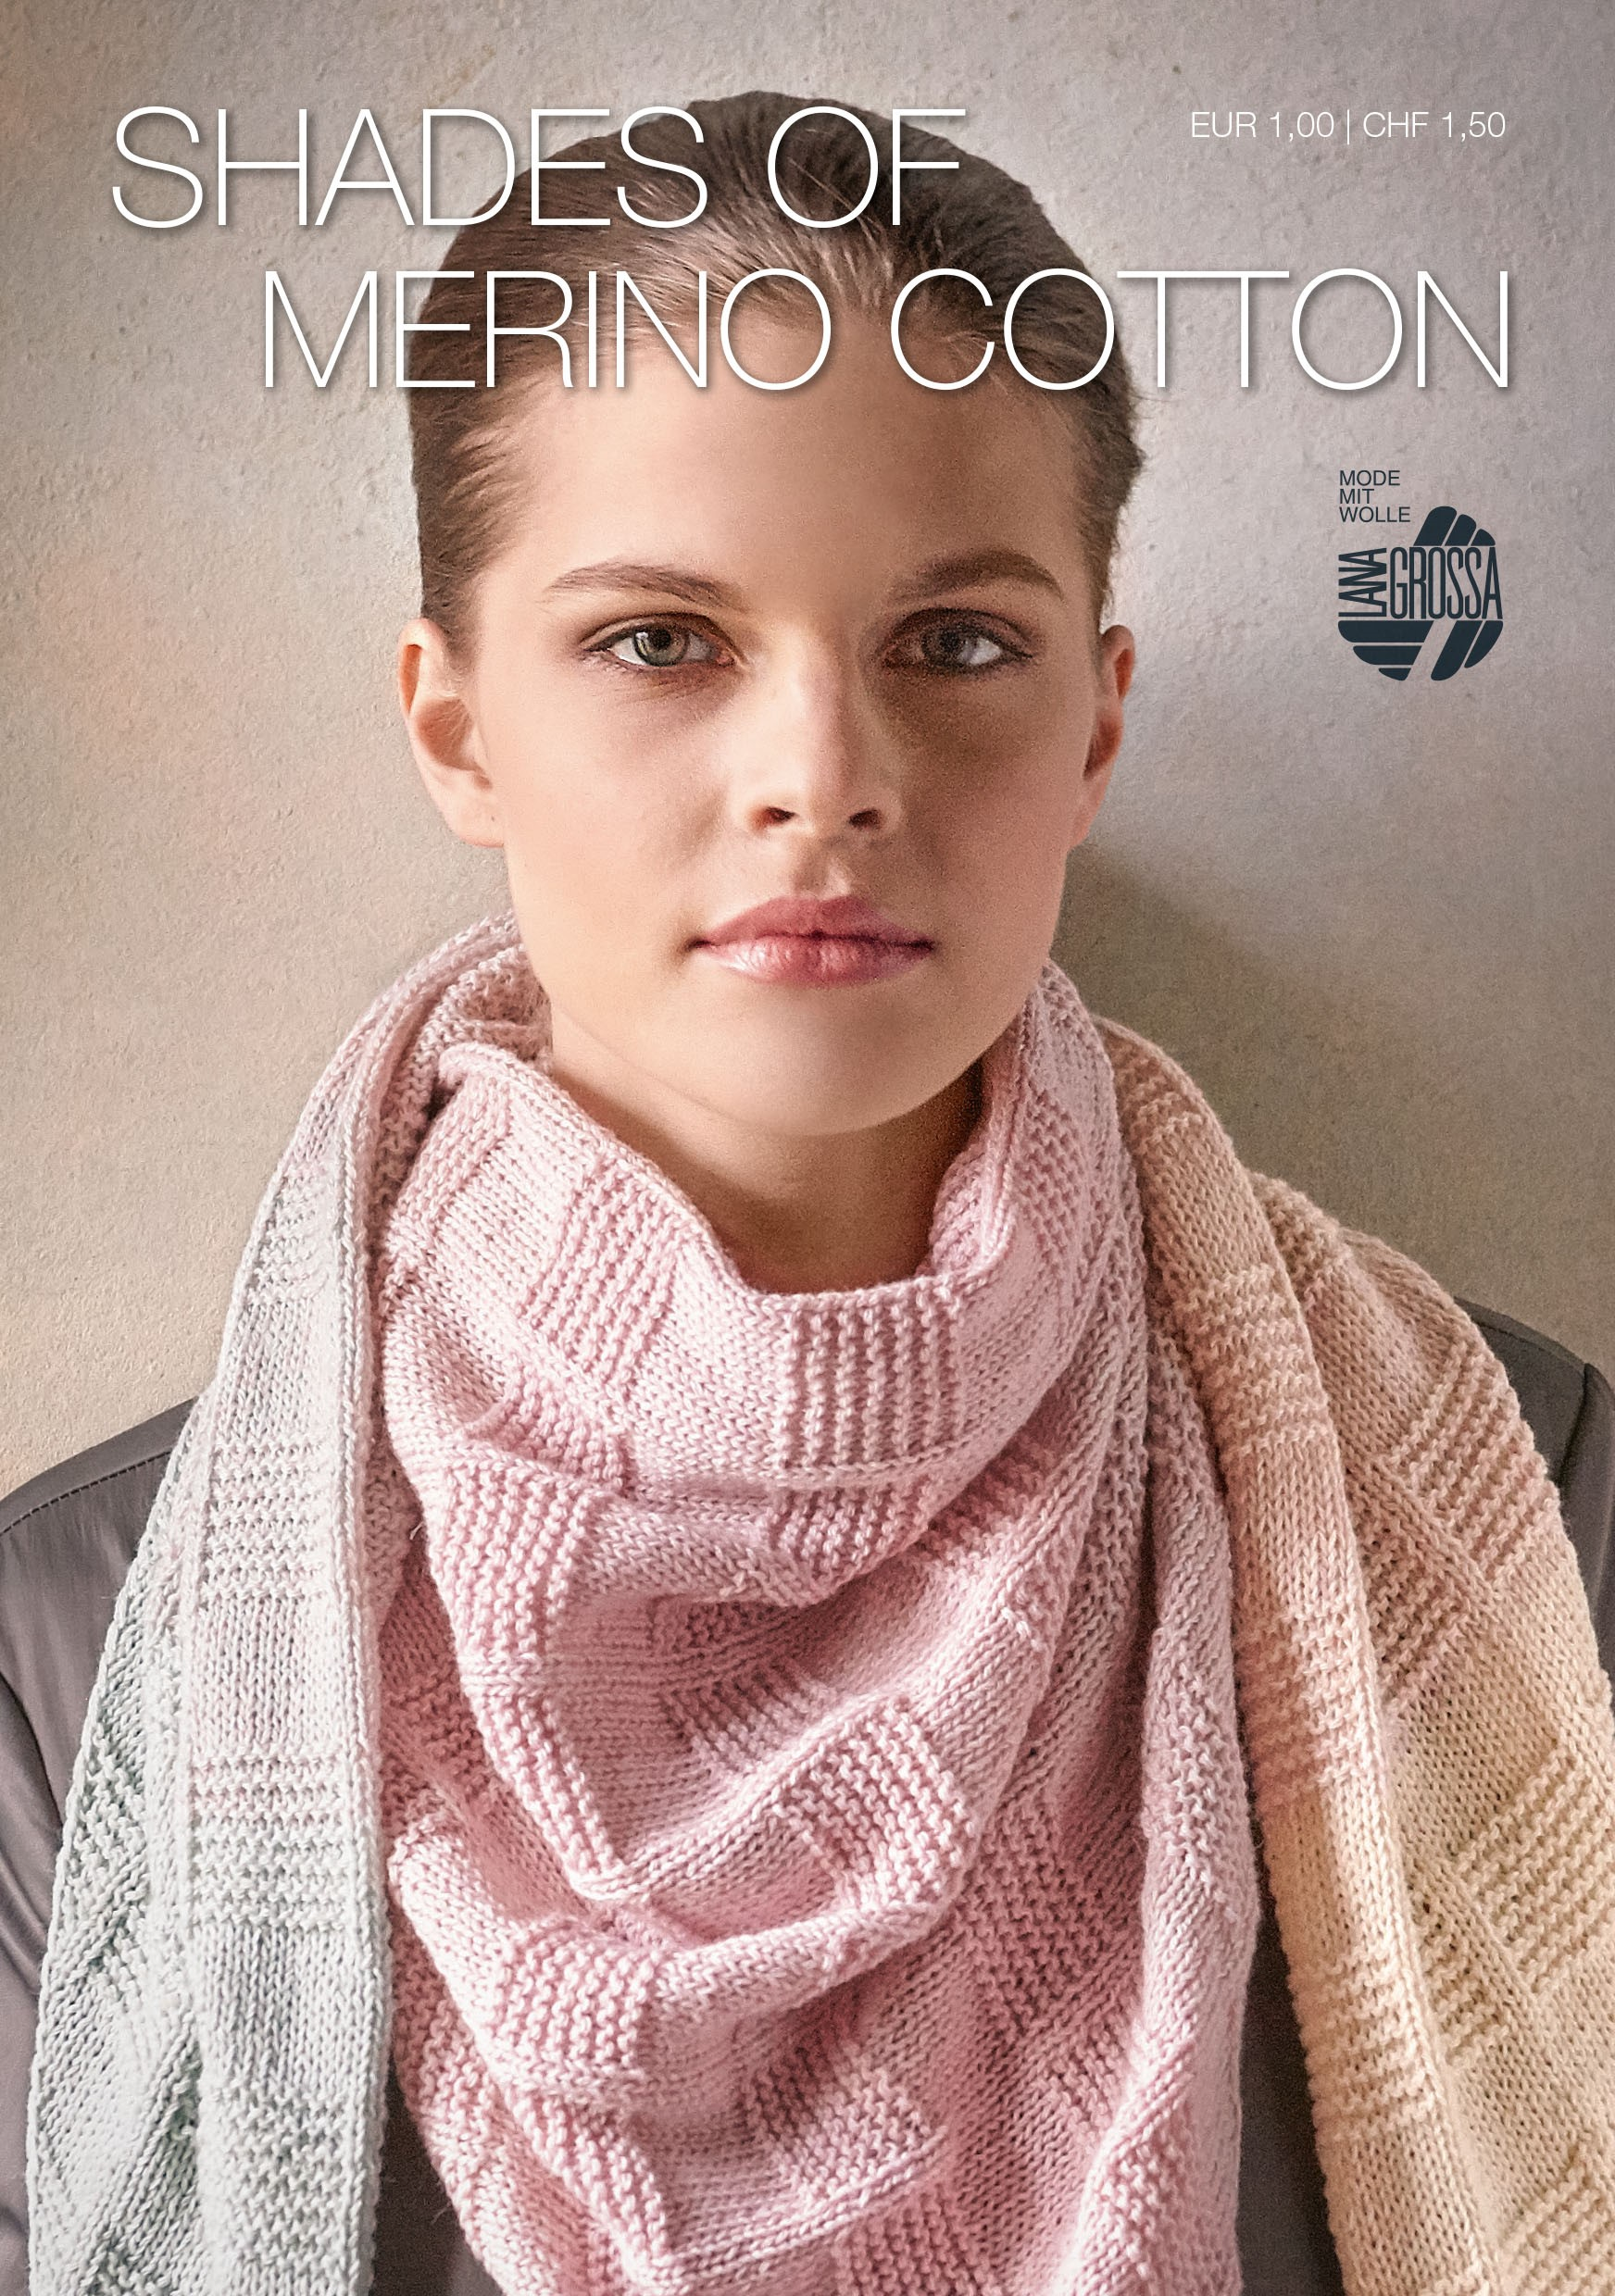 Lana Grossa SHADES OF MERINO COTTON Flyer 2017